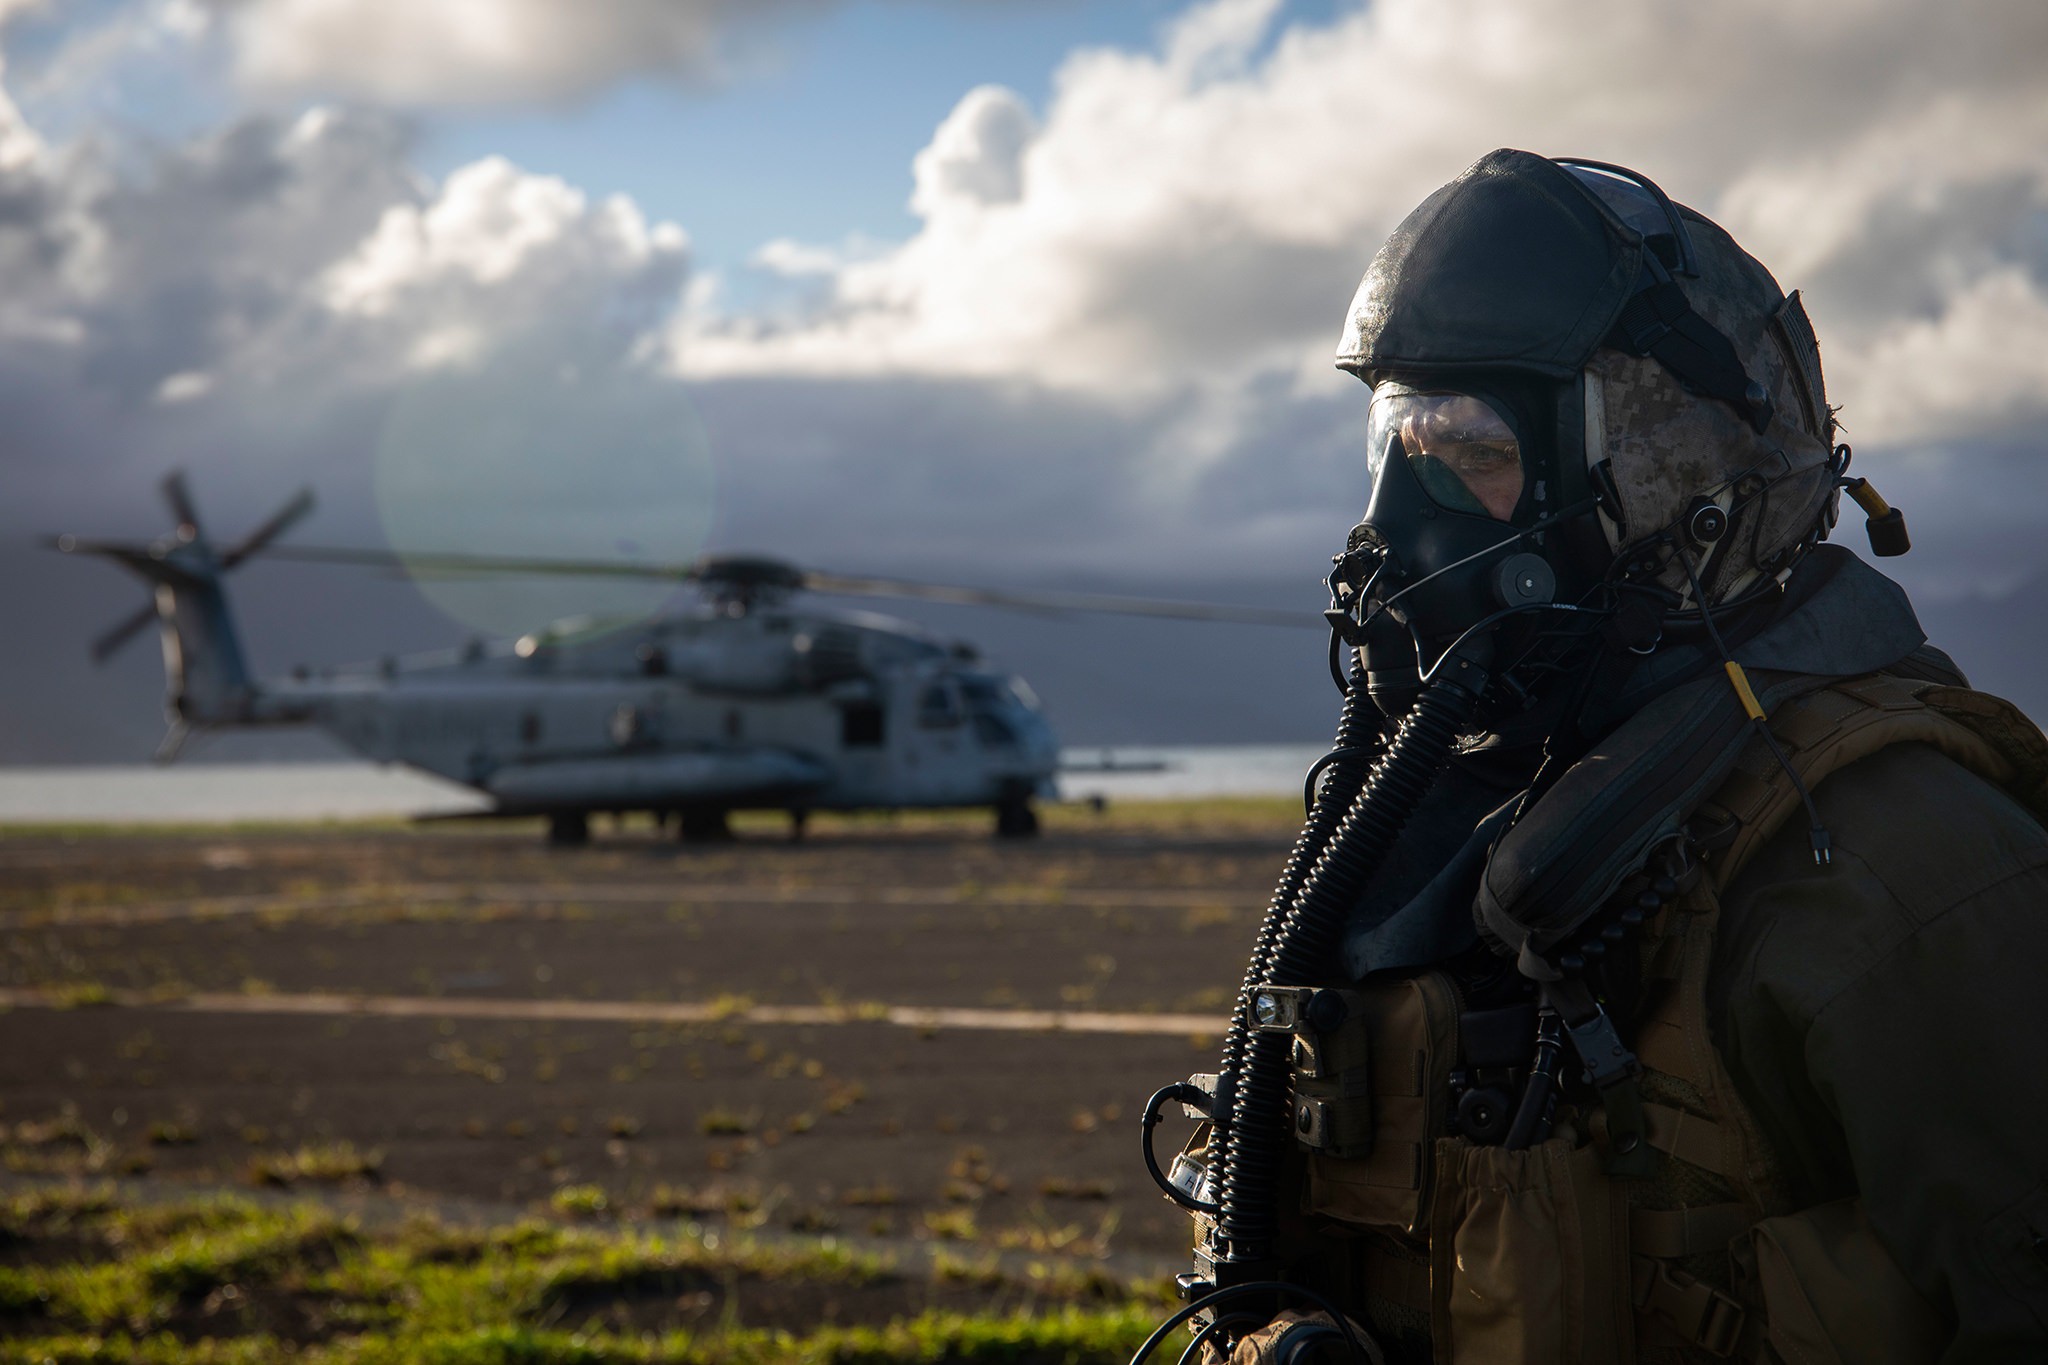 Maj. Ryan Pallas, a CH-53 Super Stallion helicopter pilot with Marine Heavy Helicopter Squadron (HMH) 463, stands by after donning his gas mask prior to a Helicopter Support Team (HST) exercise at Landing Zone Westfield, Marine Corps Base Hawaii. (Sgt. Zachary Orr/Marine Corps)